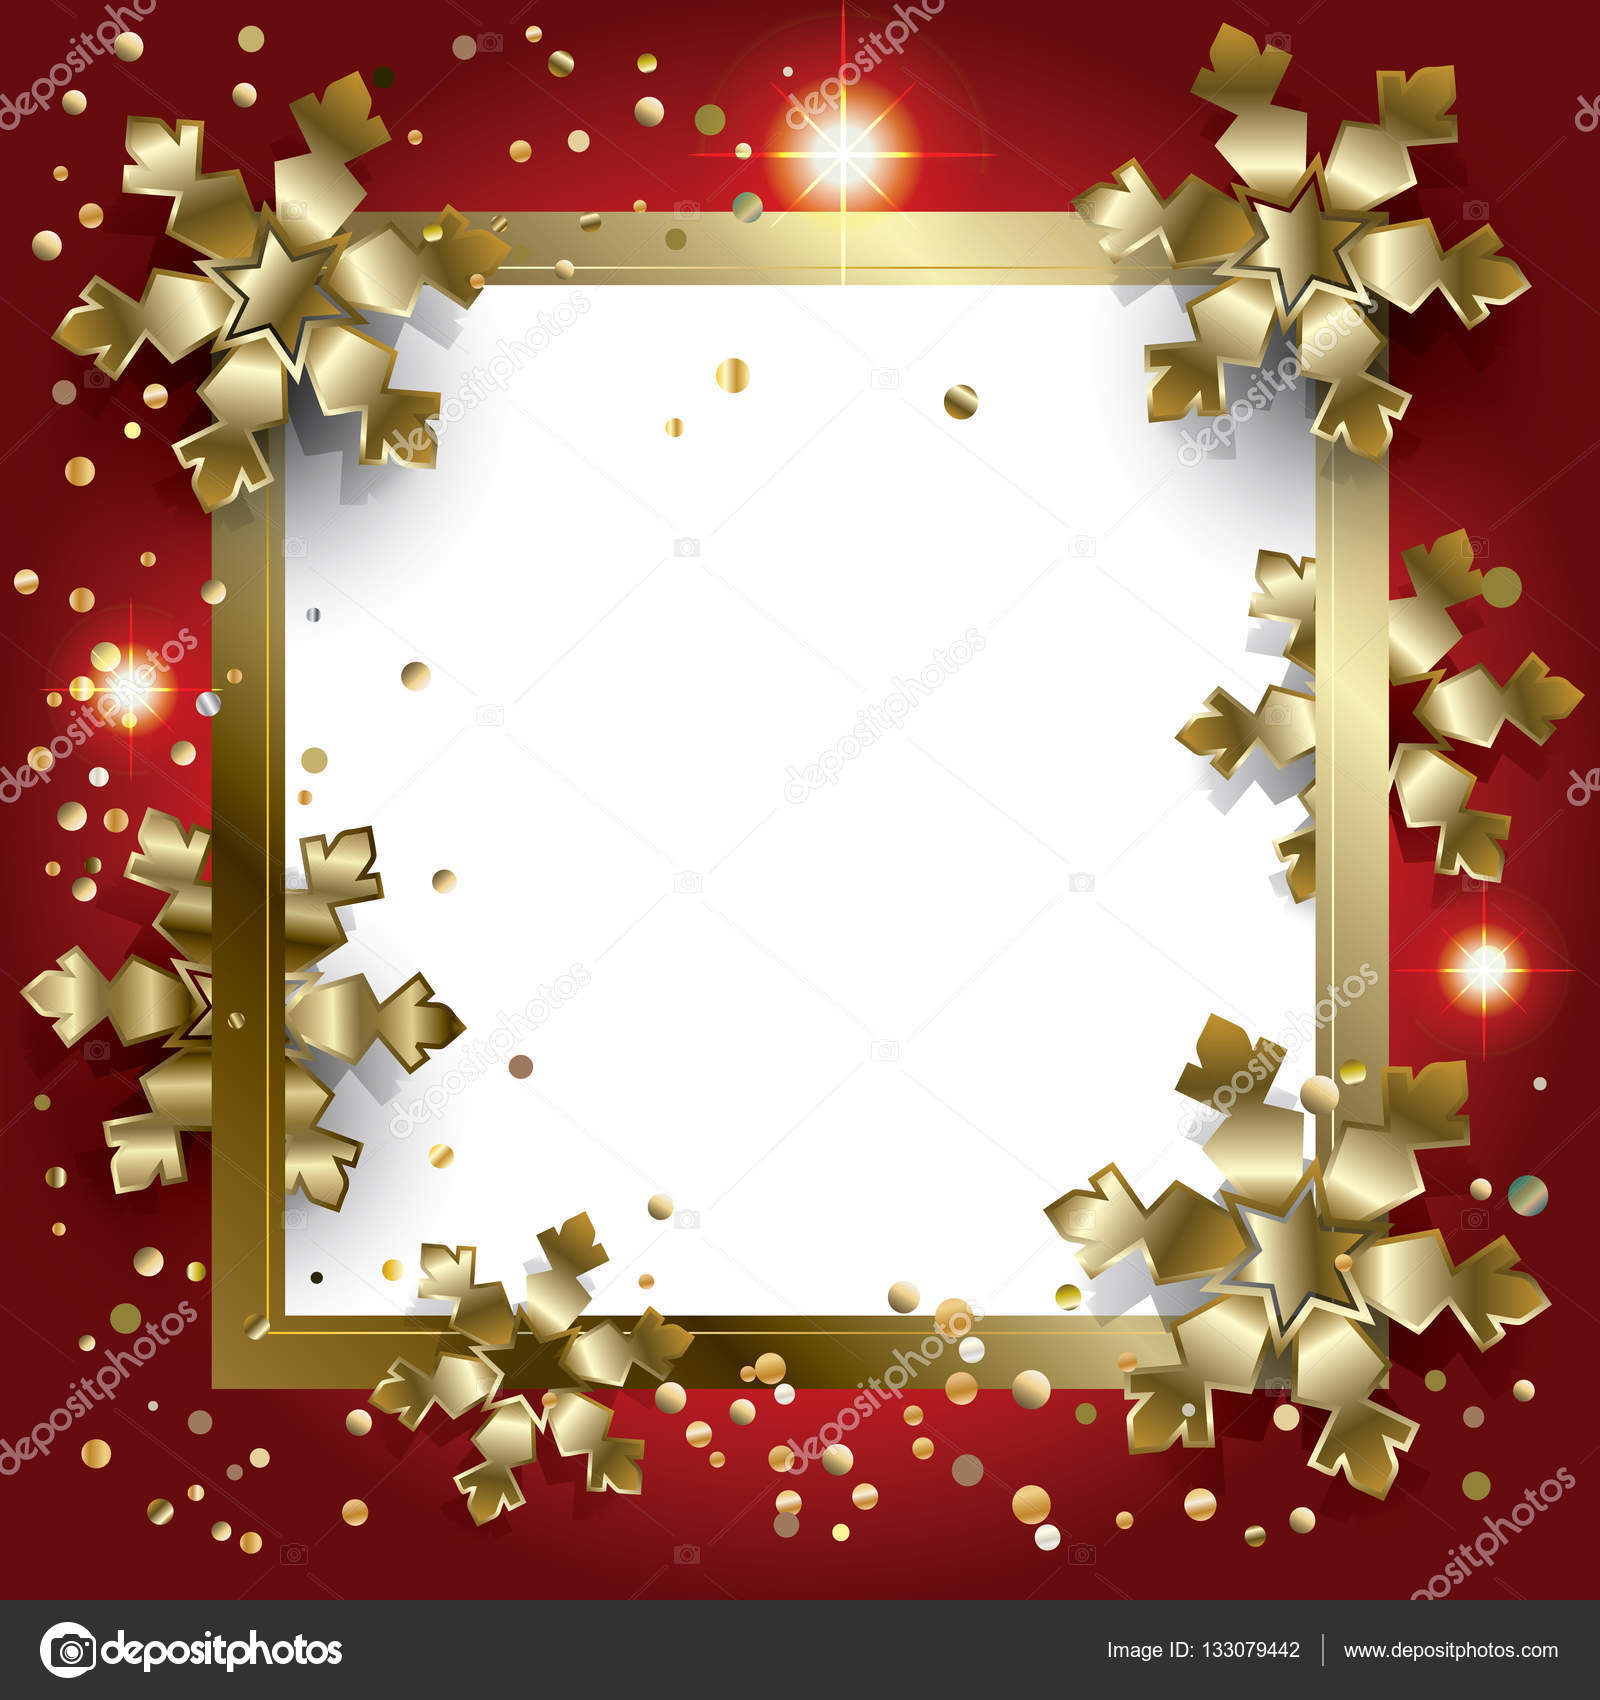 Merry Christmas and Happy New Year greeting card background with ...